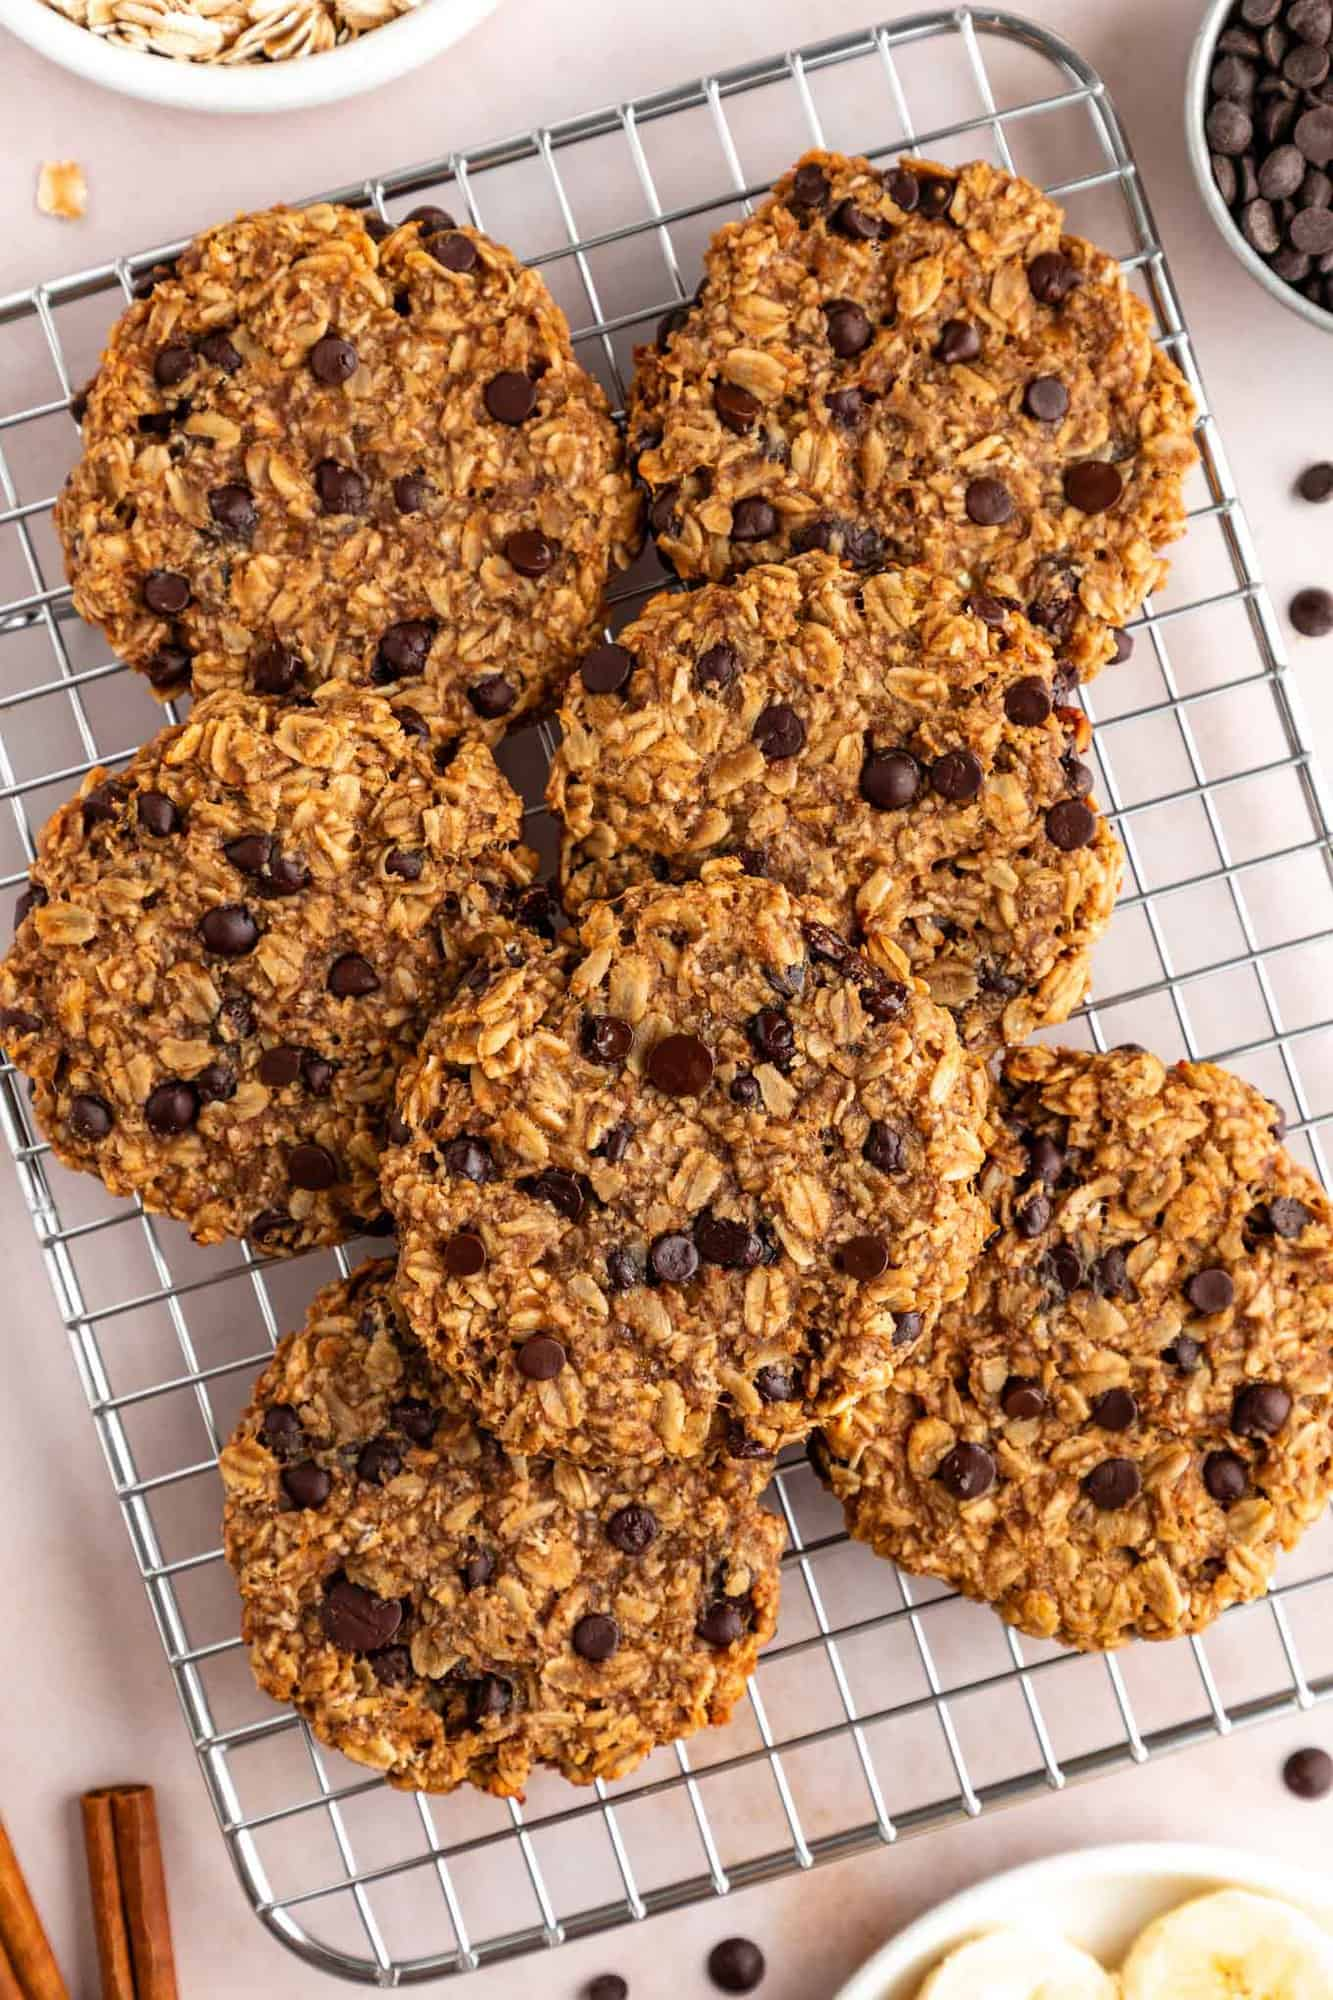 a pile of chocolate chip peanut butter banana oatmeal cookies on a wire cooling rack